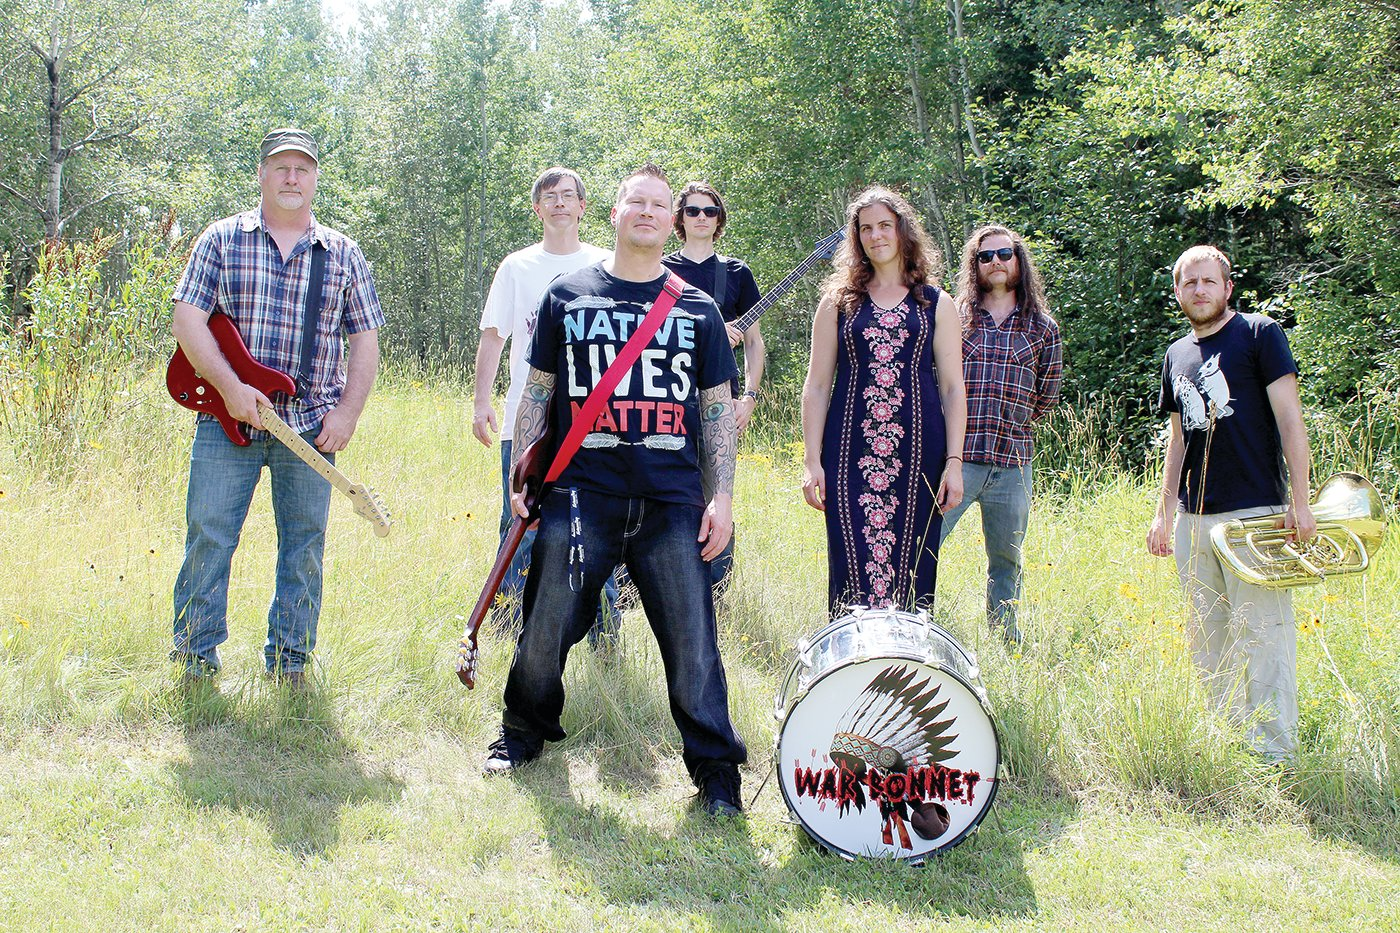 War Bonnet and their performance ensemble. Left to right are: Eric Krenz, Tony Parson, Chaz Wagner, Sean Zarn, Becky Frichek, Tom Frichek and Alex Mahne.